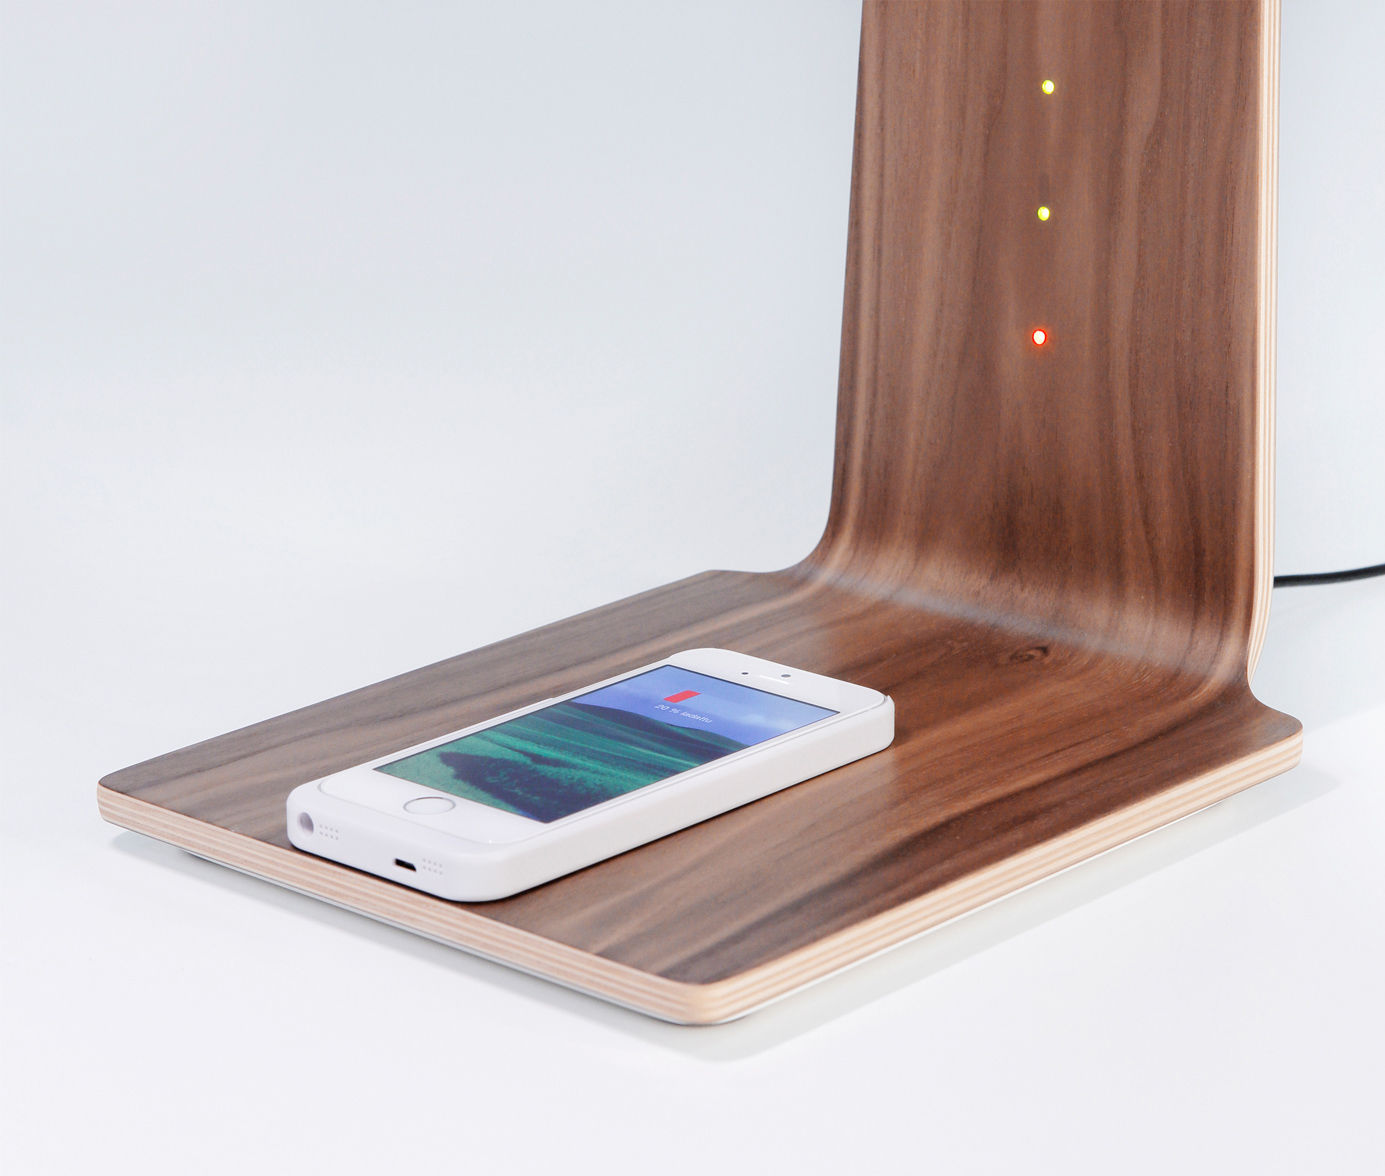 led8 lampe ohne kabel kabellose smartphone ladestation nussbaum by tunto made in design. Black Bedroom Furniture Sets. Home Design Ideas